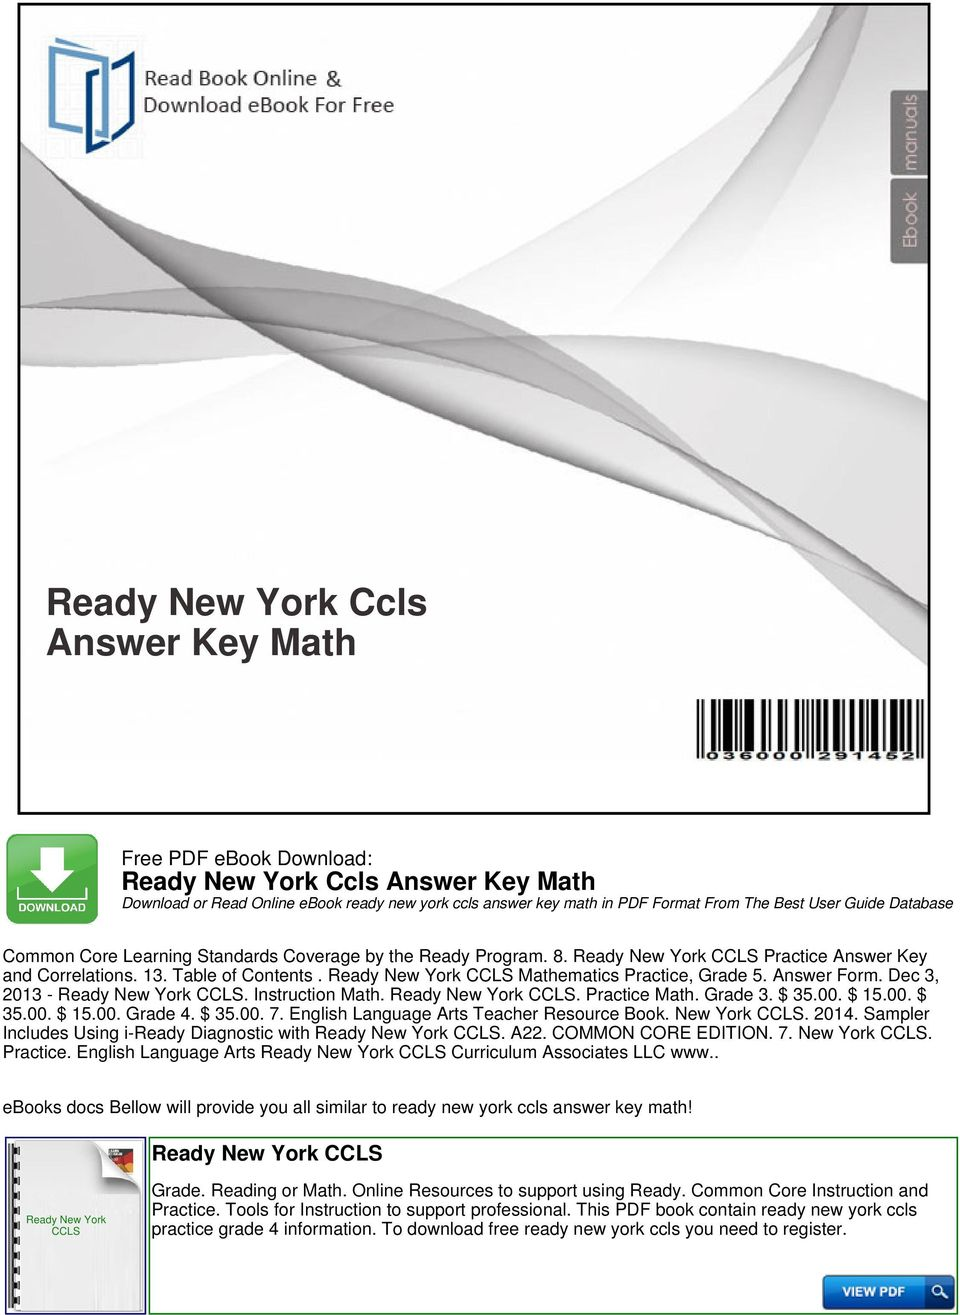 Workbooks houghton mifflin math practice workbook grade 4 : Ready New York Ccls Answer Key Math - PDF